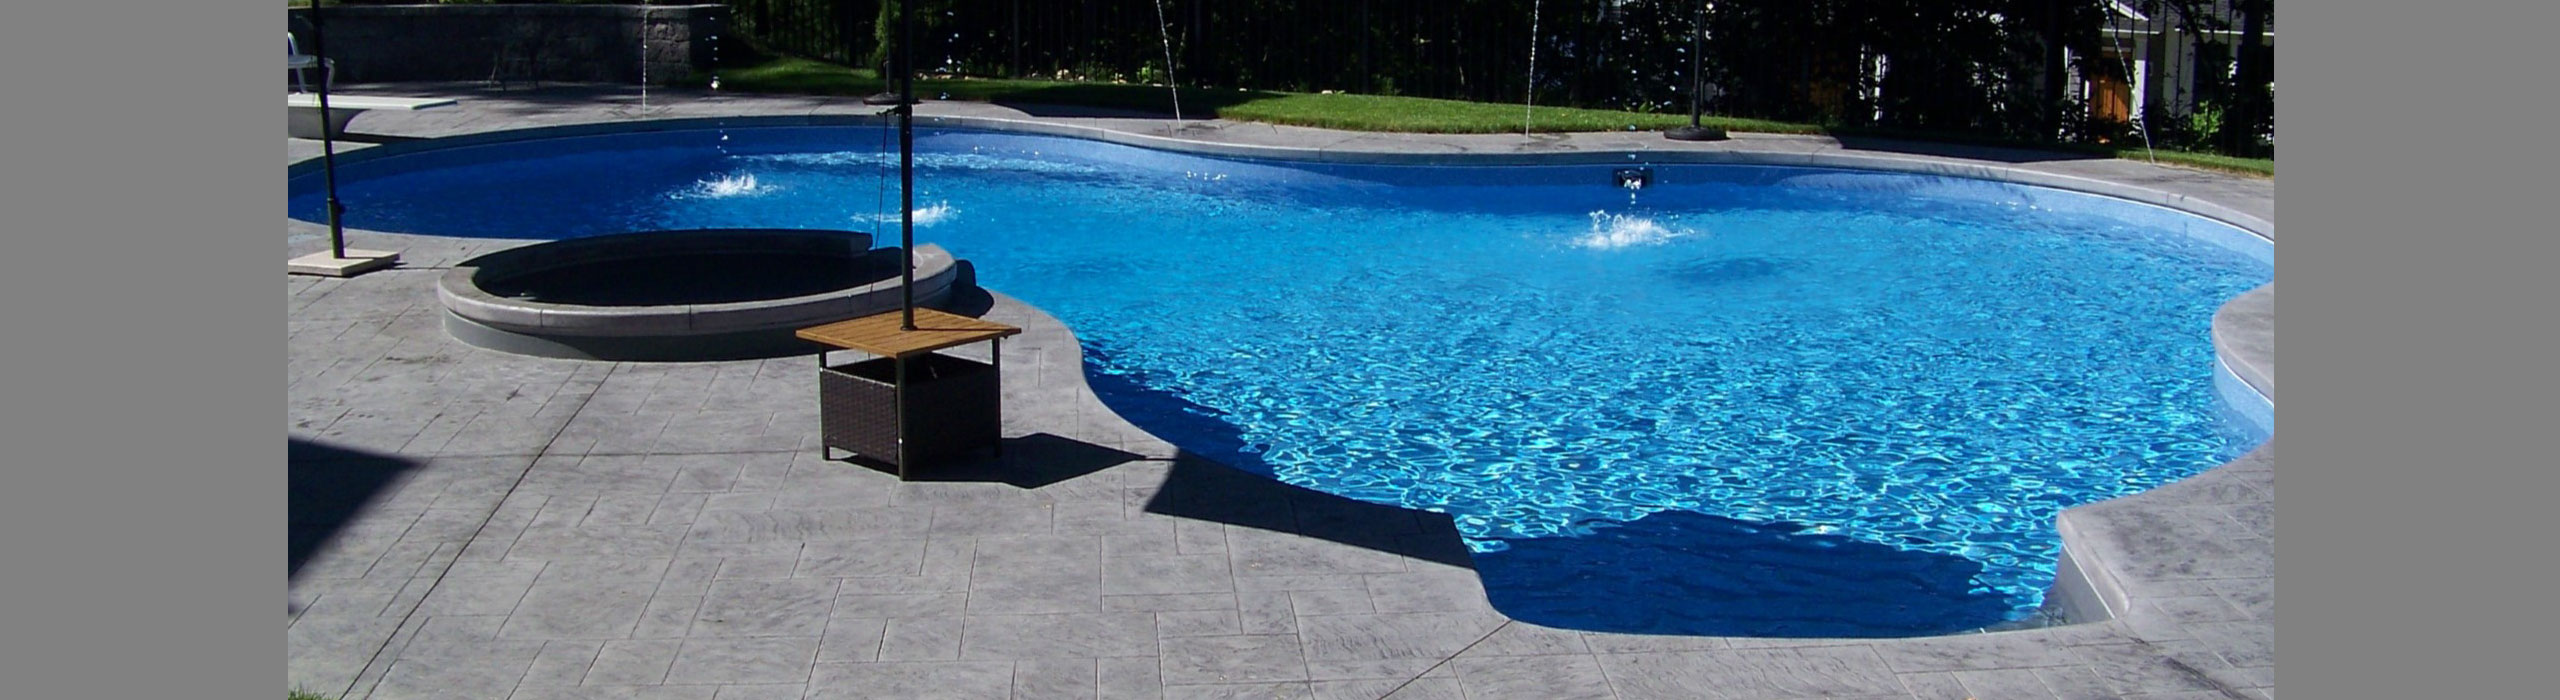 In Ground Pools Above Ground Pools Spas And Hot Tubs